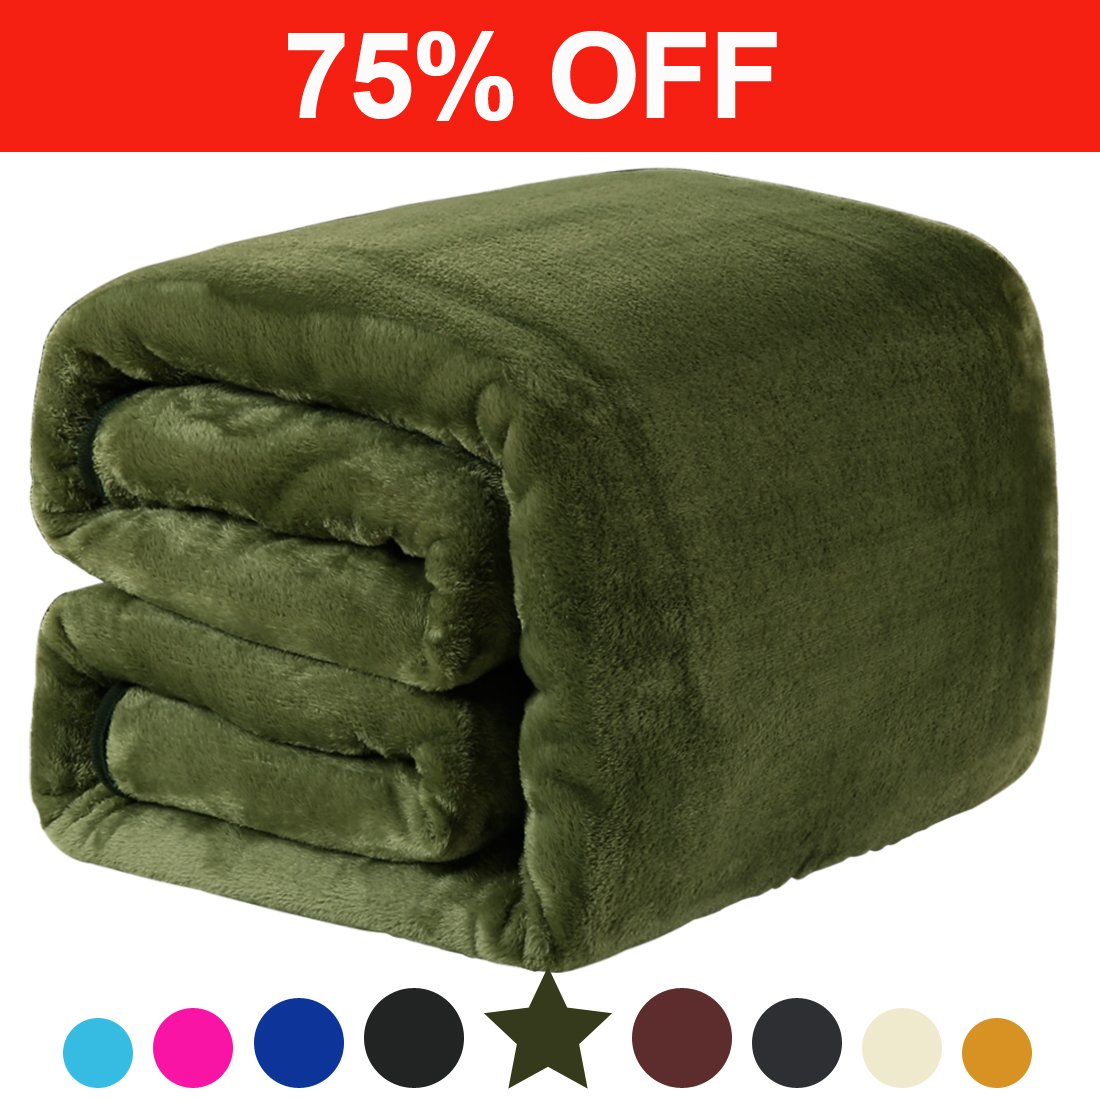 Fleece Twin Blanket 330 GSM Super Soft Warm Extra Silky Lightweight Bed Blanket, Couch Blanket, Travelling and Camping Blanket (Natural Green